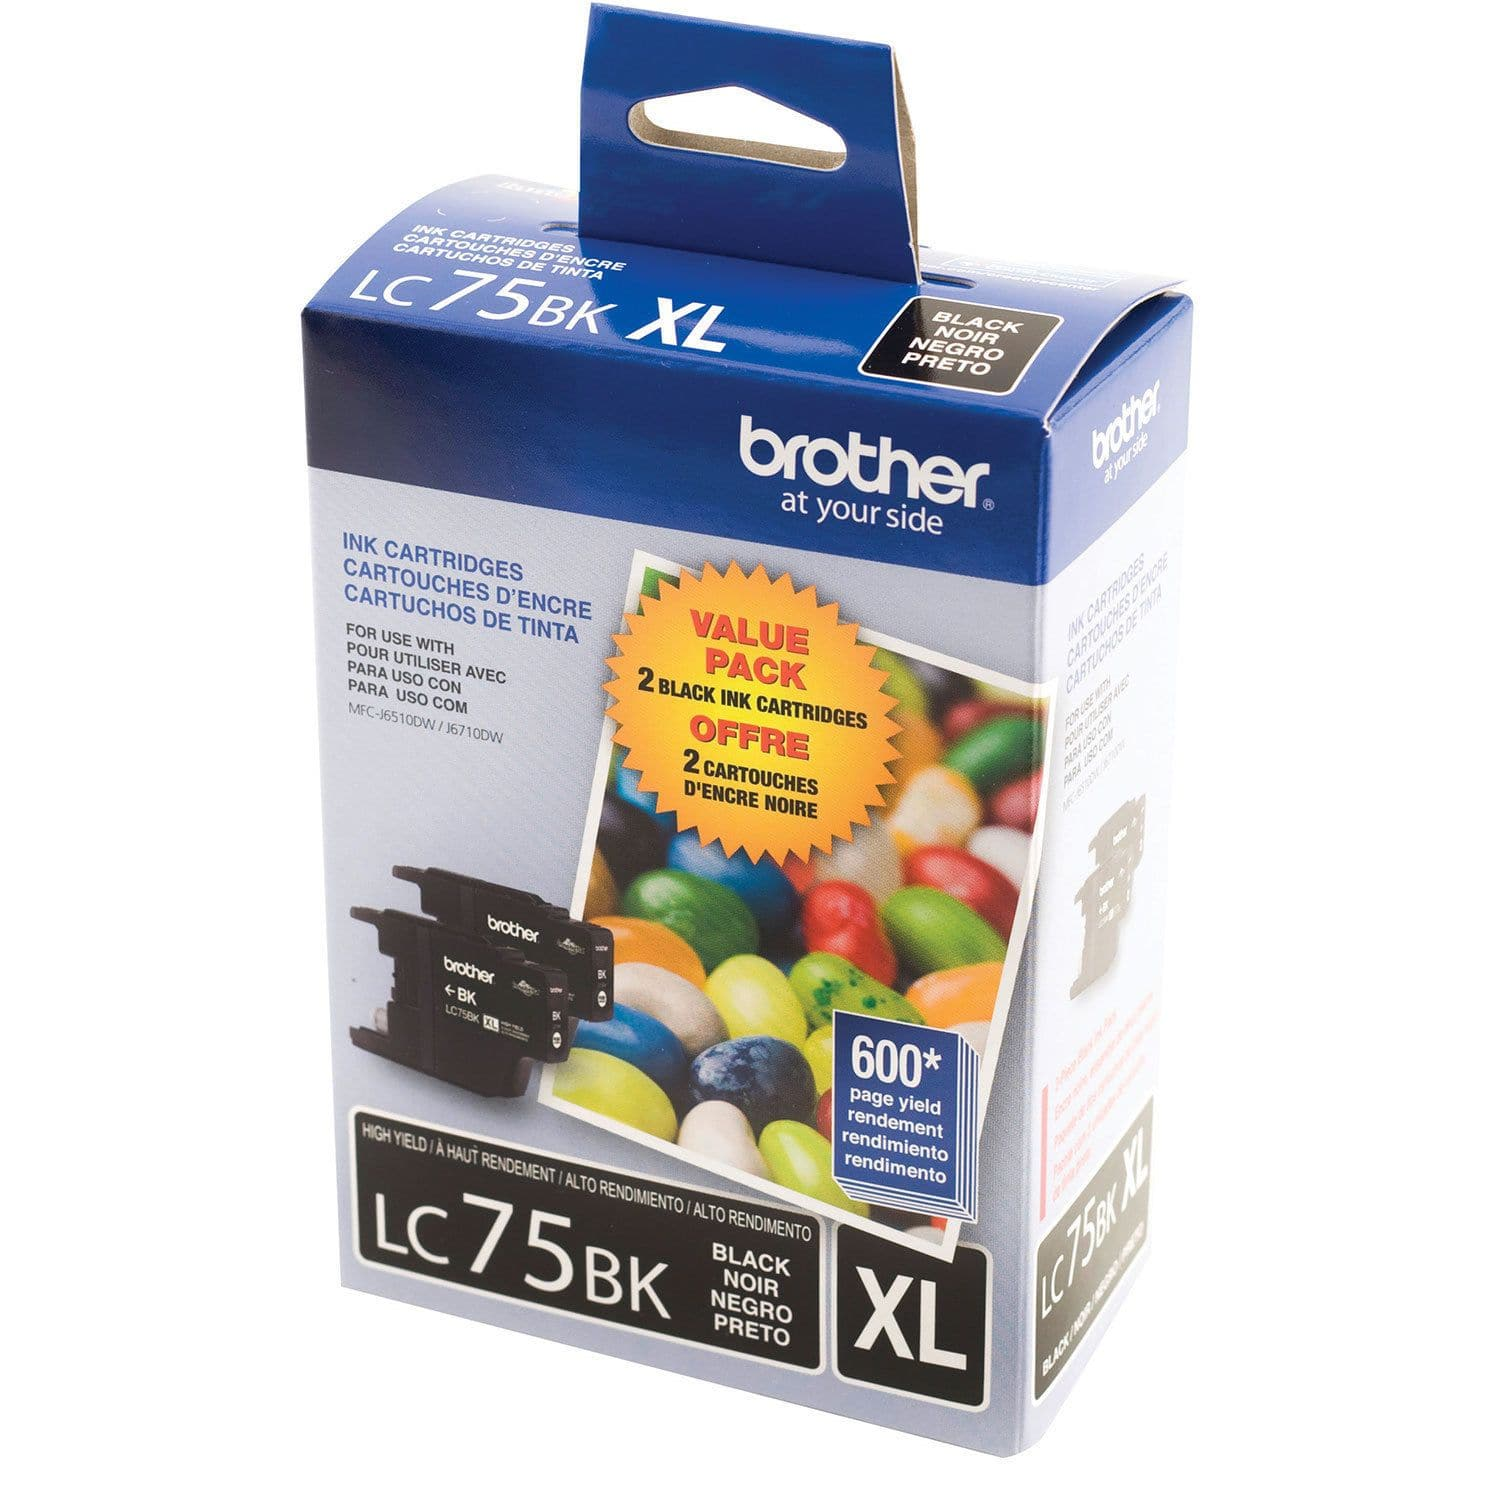 Printers Ink Wisetech Inc Tinta Catridge Hp 950 Xl Black Original Brother Lc75bk 2 Pack